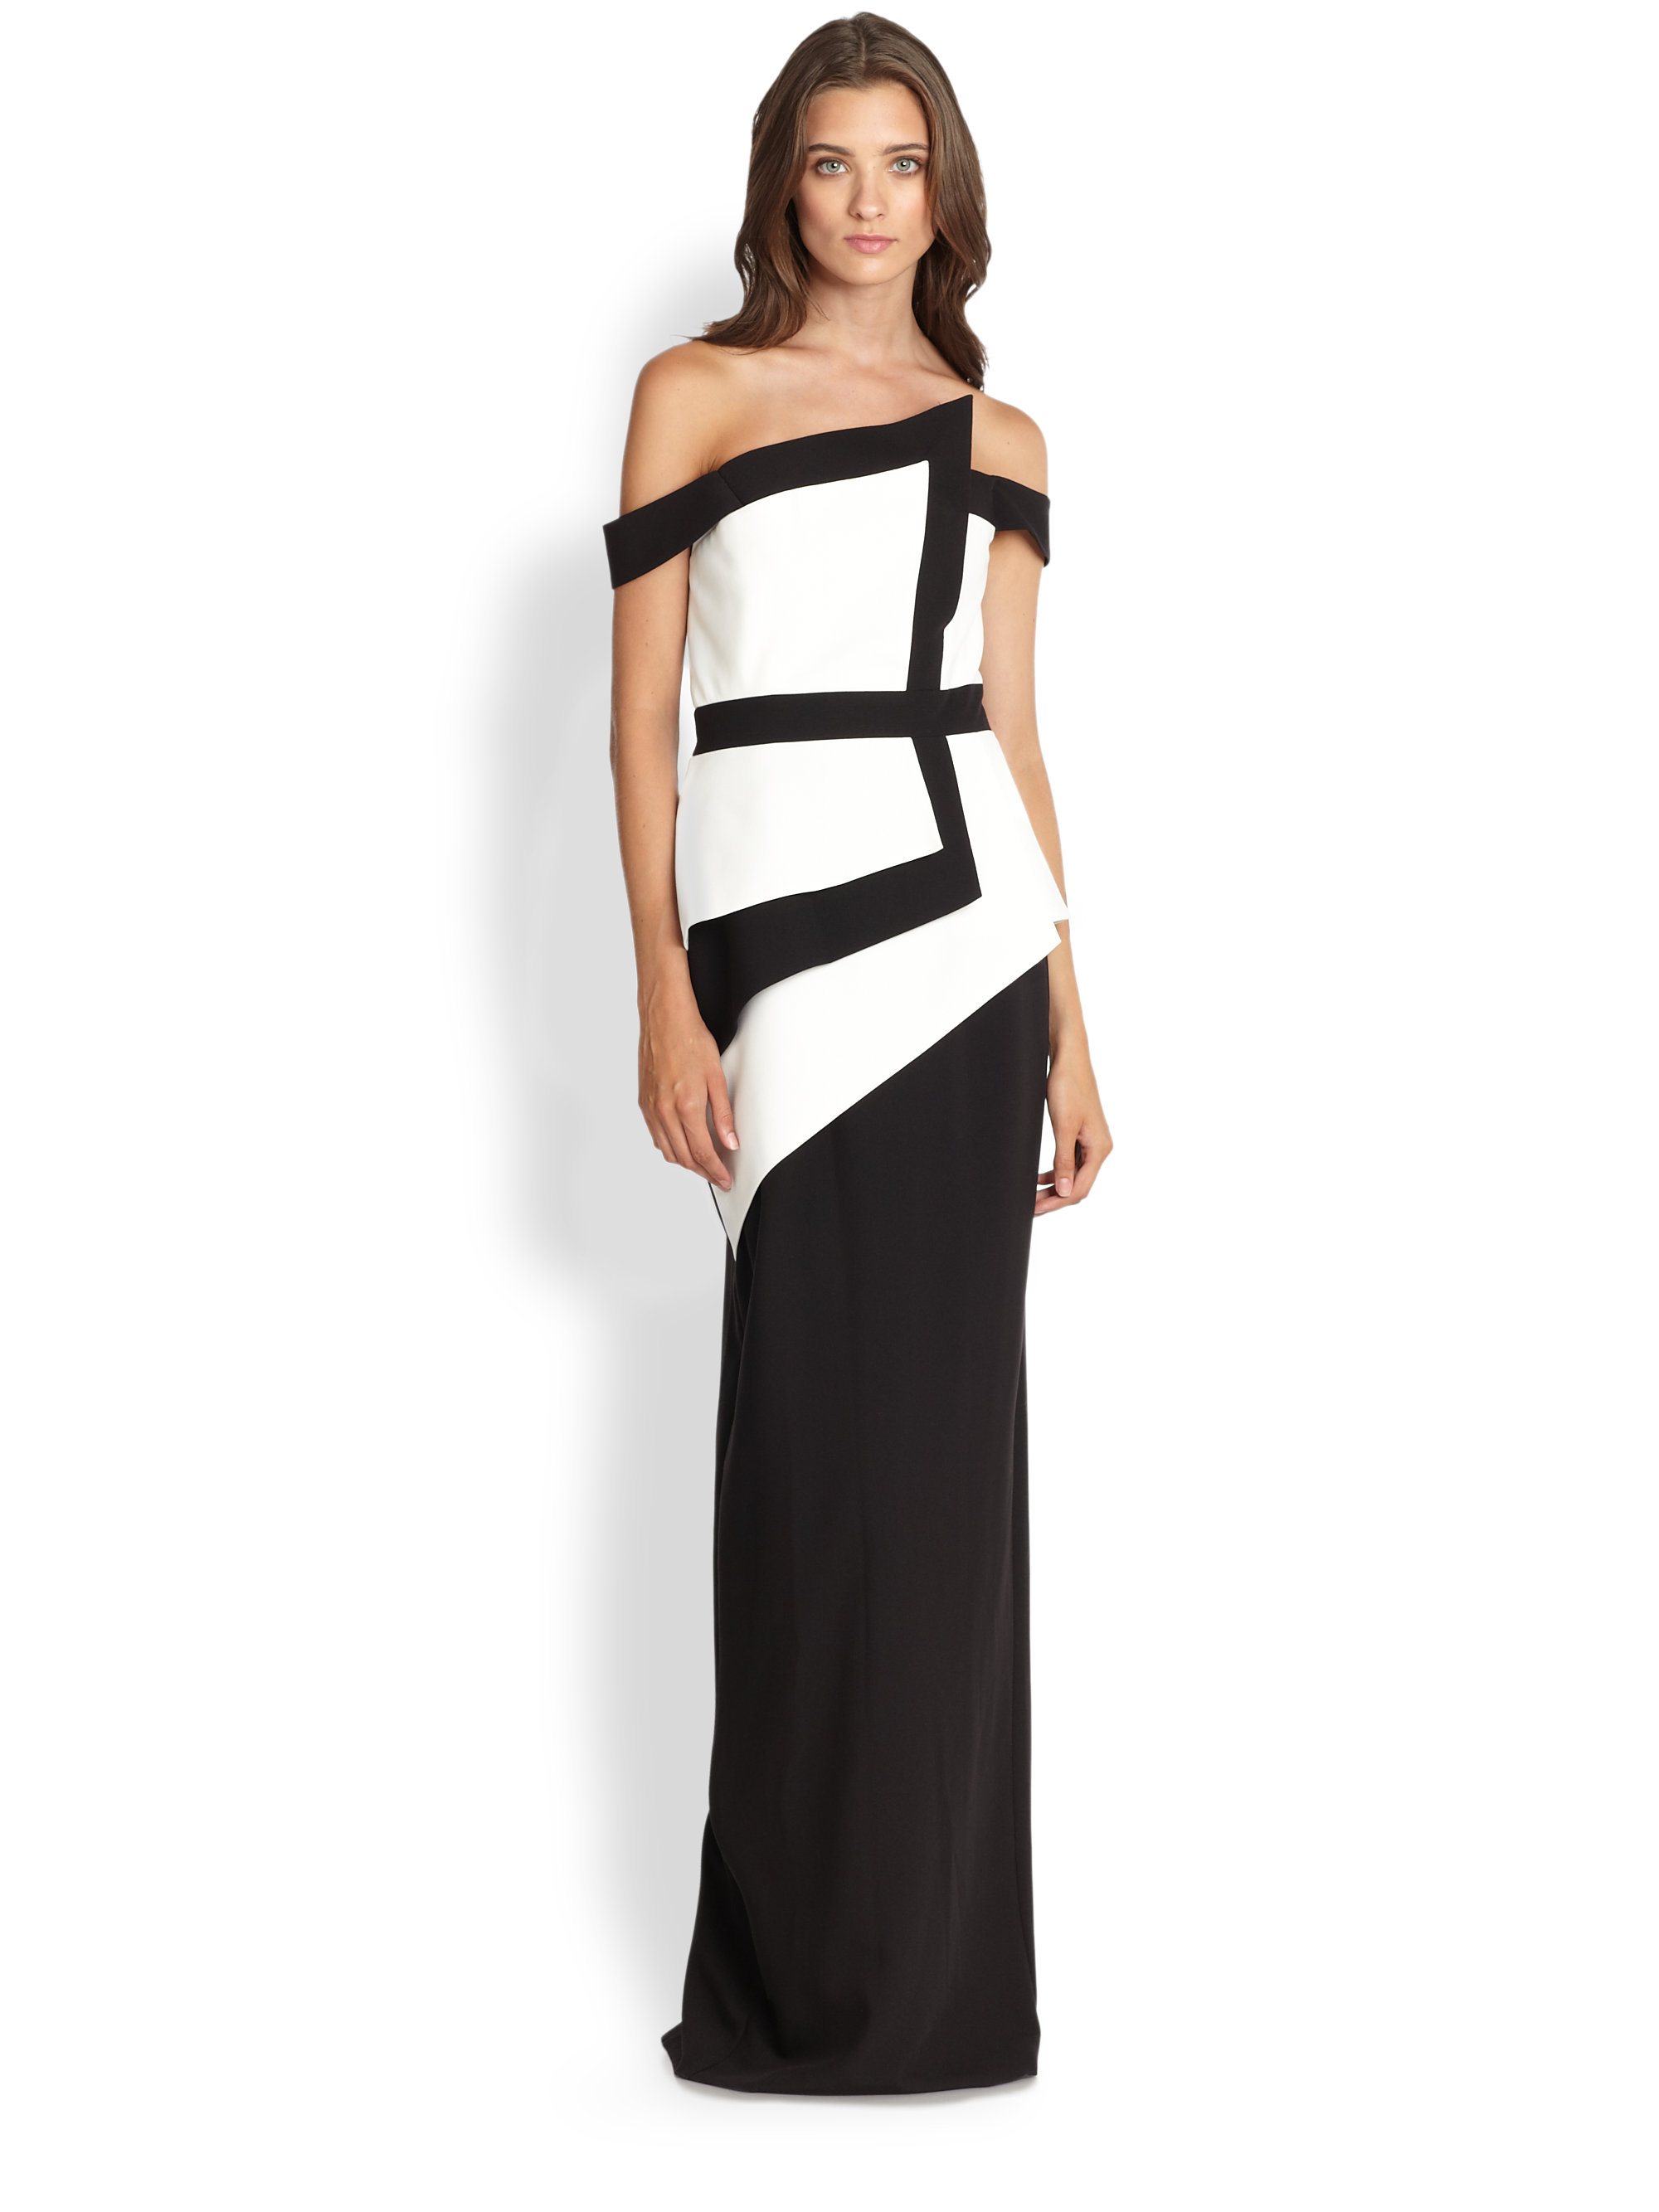 Lyst - Black Halo Asymmetrical Stretch Crepe Off-Shoulder Gown in Black